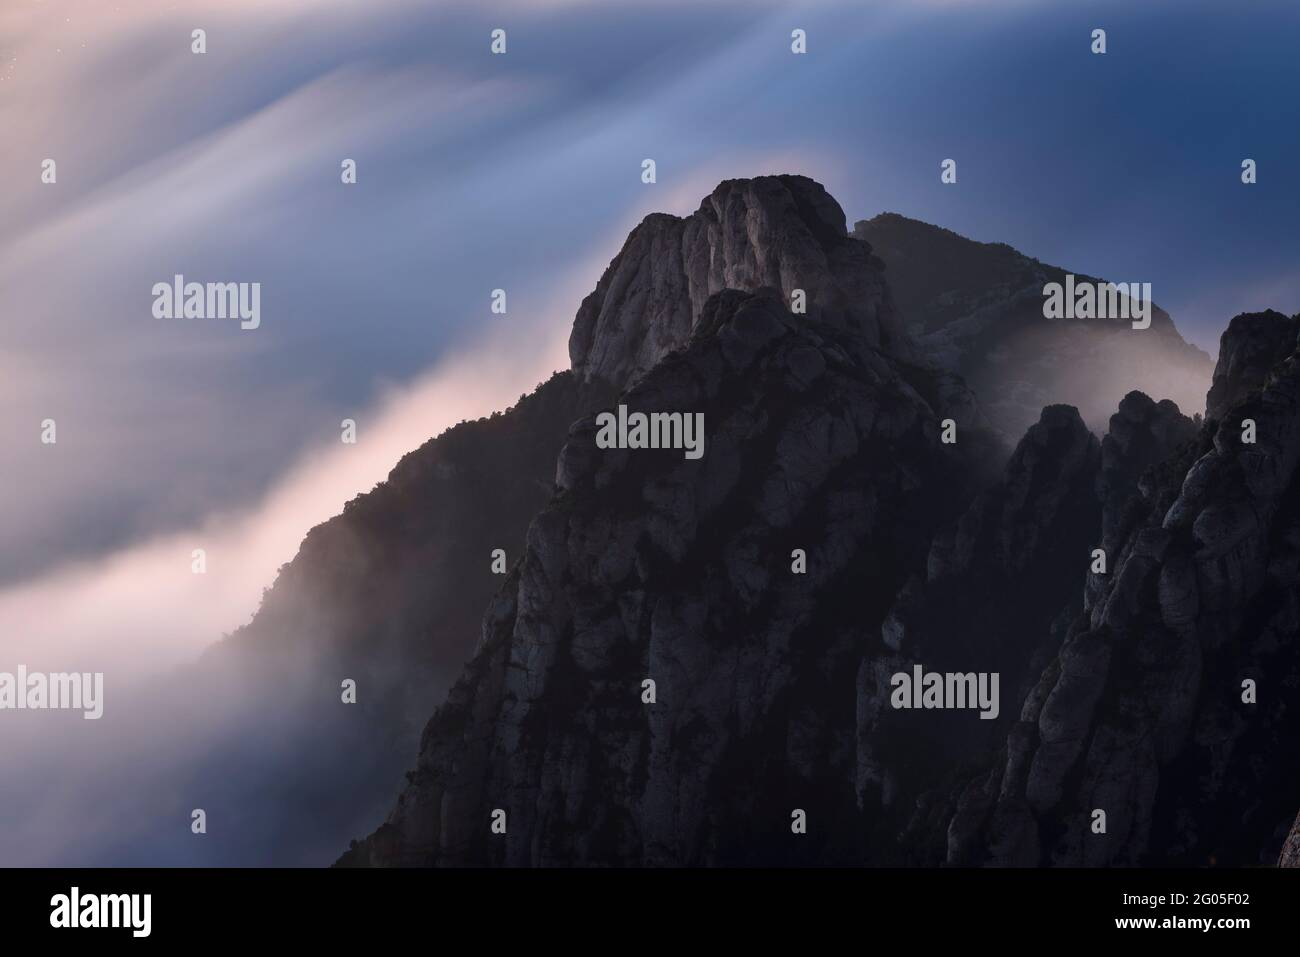 Creu de Sant Miquel Vewpoint, in Montserrat, at night, with a night sea of clouds - fog (Barcelona, Catalonia, Spain) Stock Photo